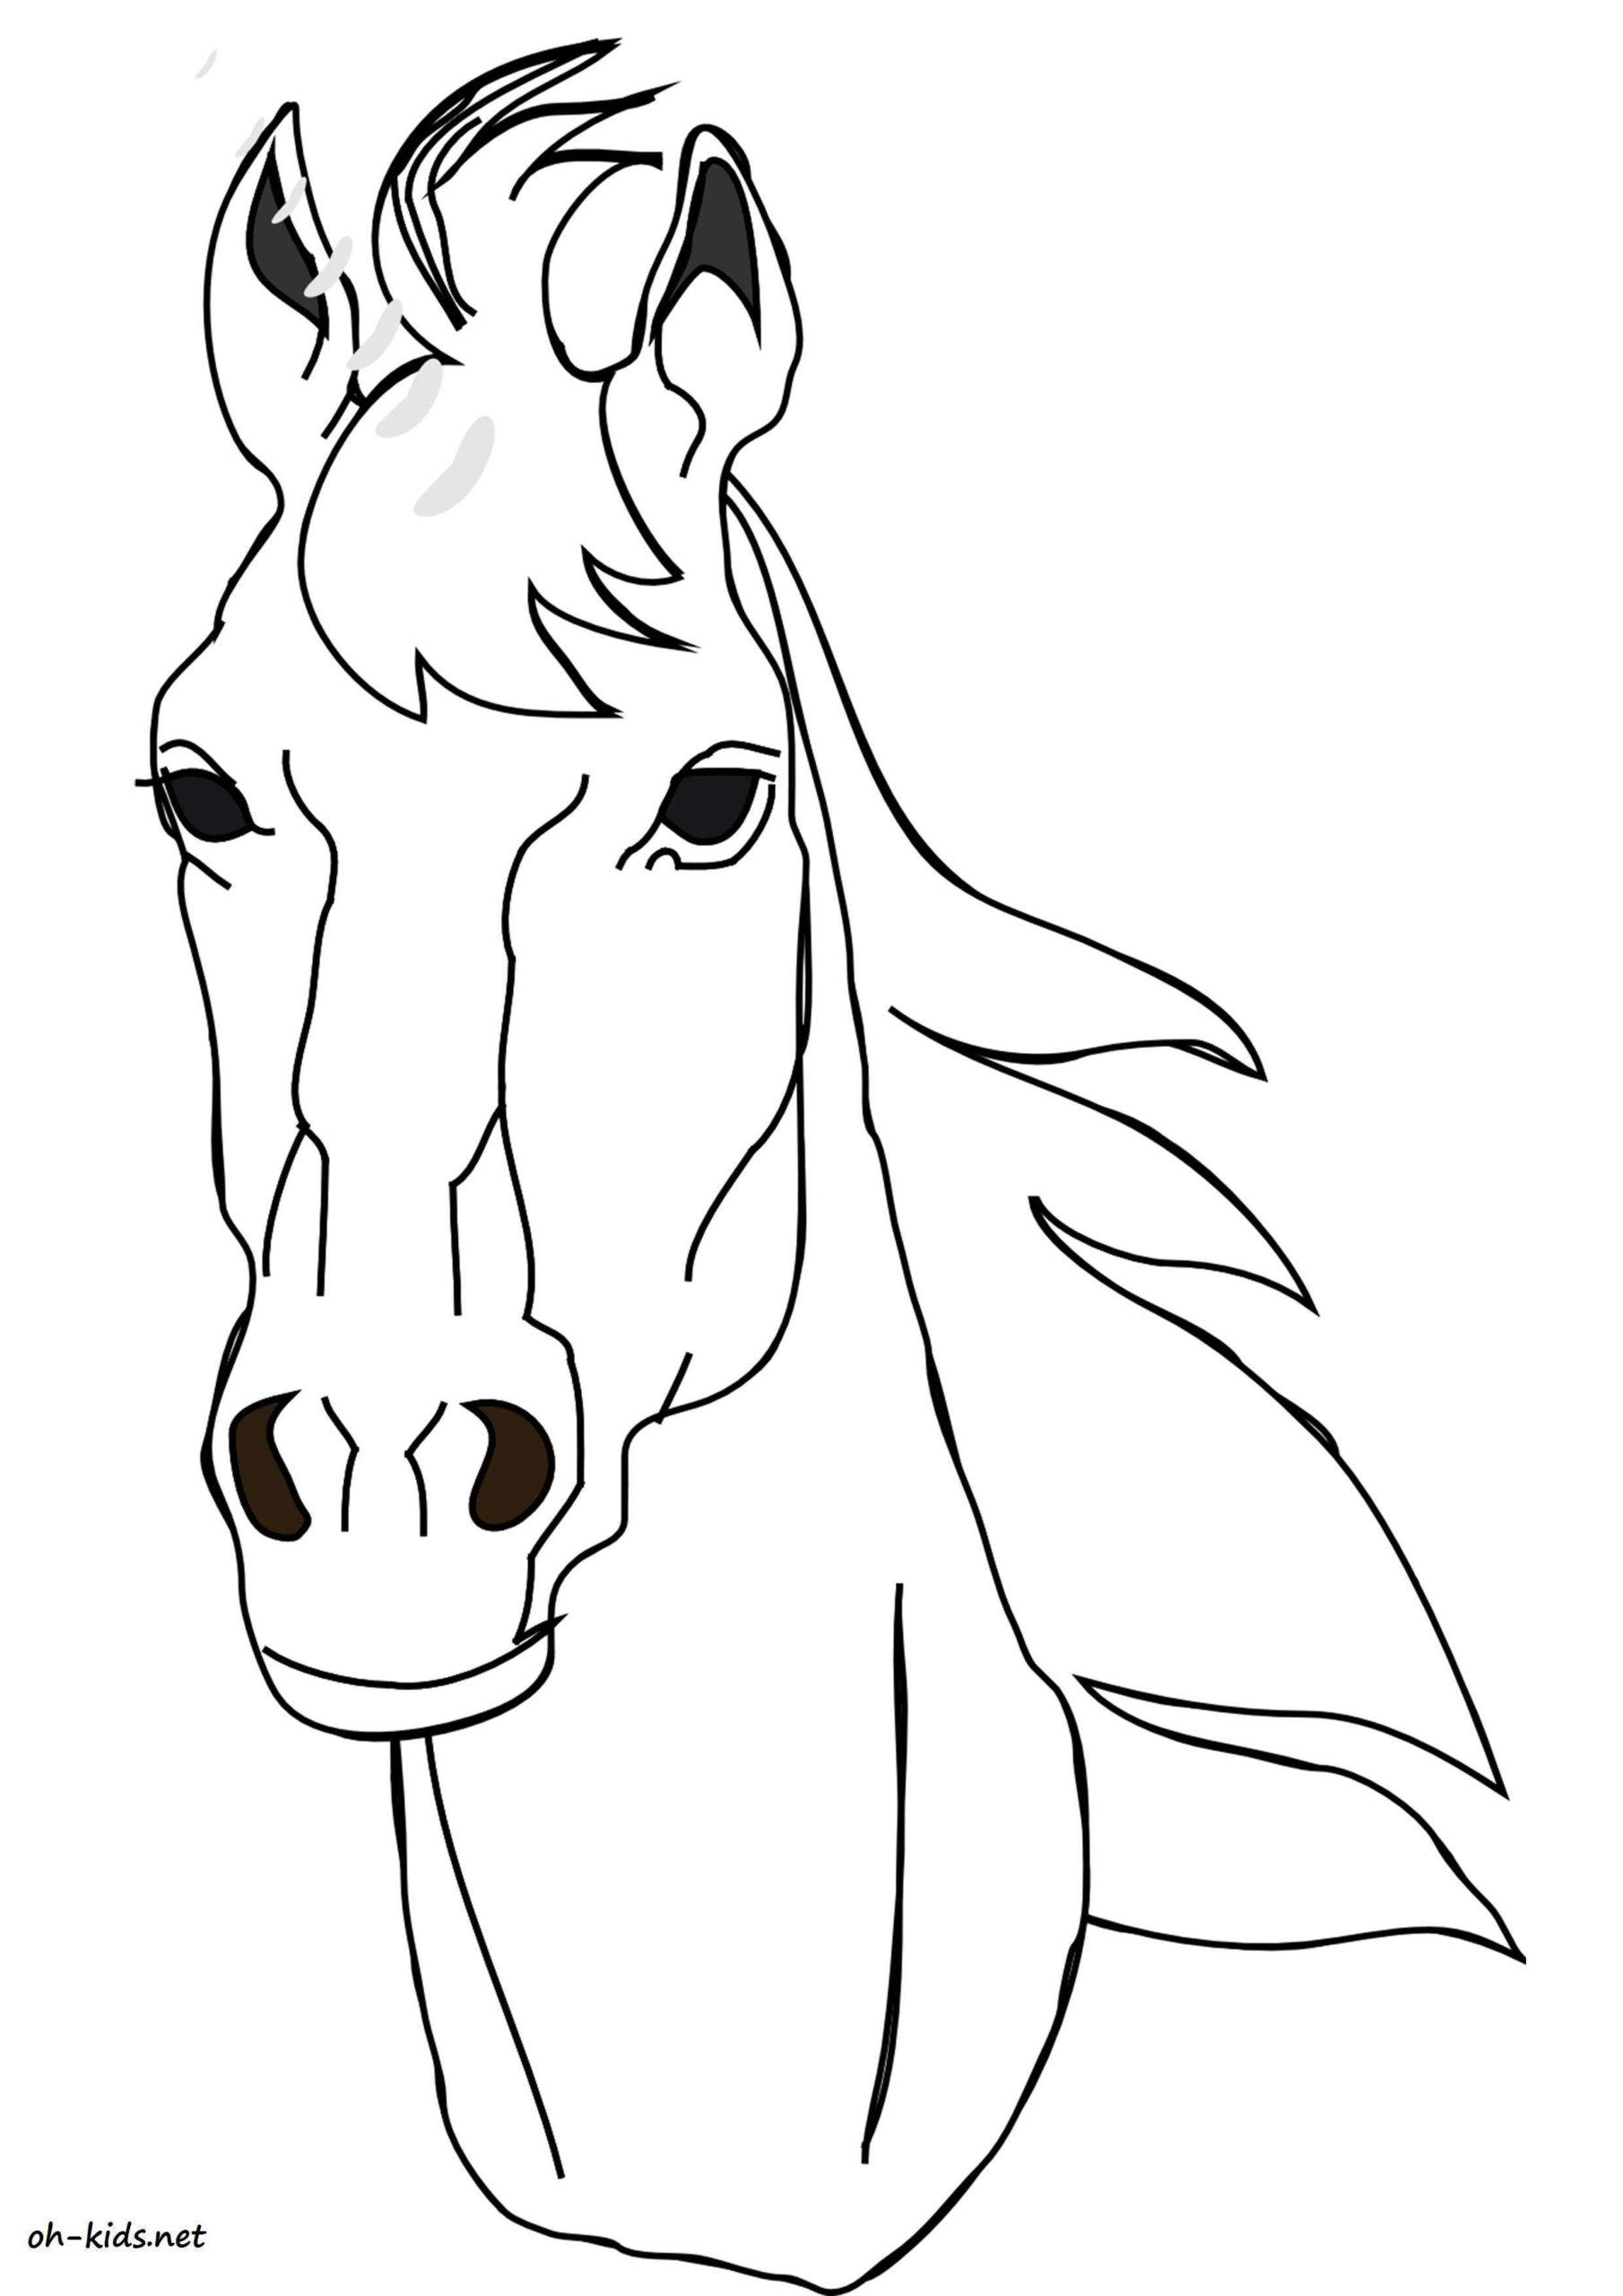 Haut Dessin Facile A Faire De Cheval 49 Dans Coloriage Pages for Dessin Facile A Faire De Cheval